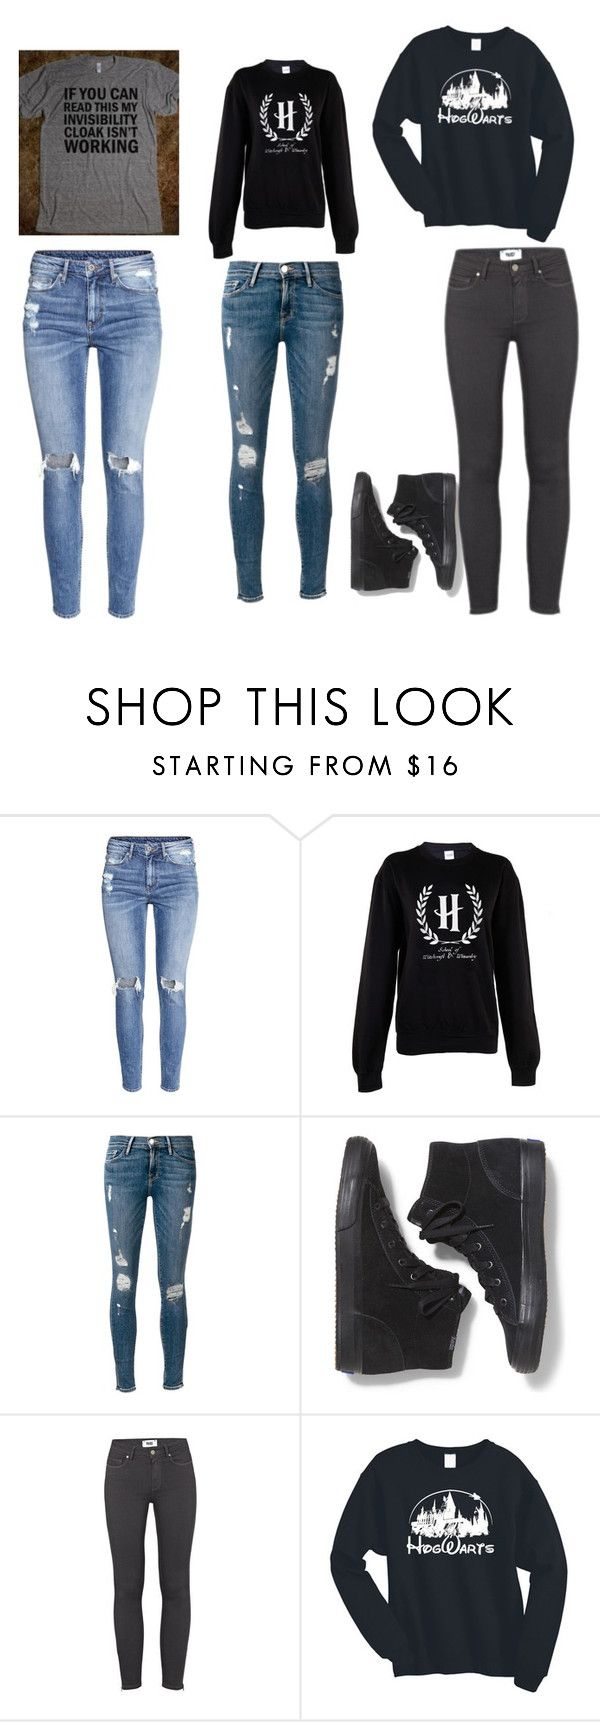 """""""Harry Potter"""" by hogwartshermione ❤ liked on Polyvore featuring H&M, Frame Denim, Keds, Paige Denim, women's clothing, women, female, woman, misses and juniors"""